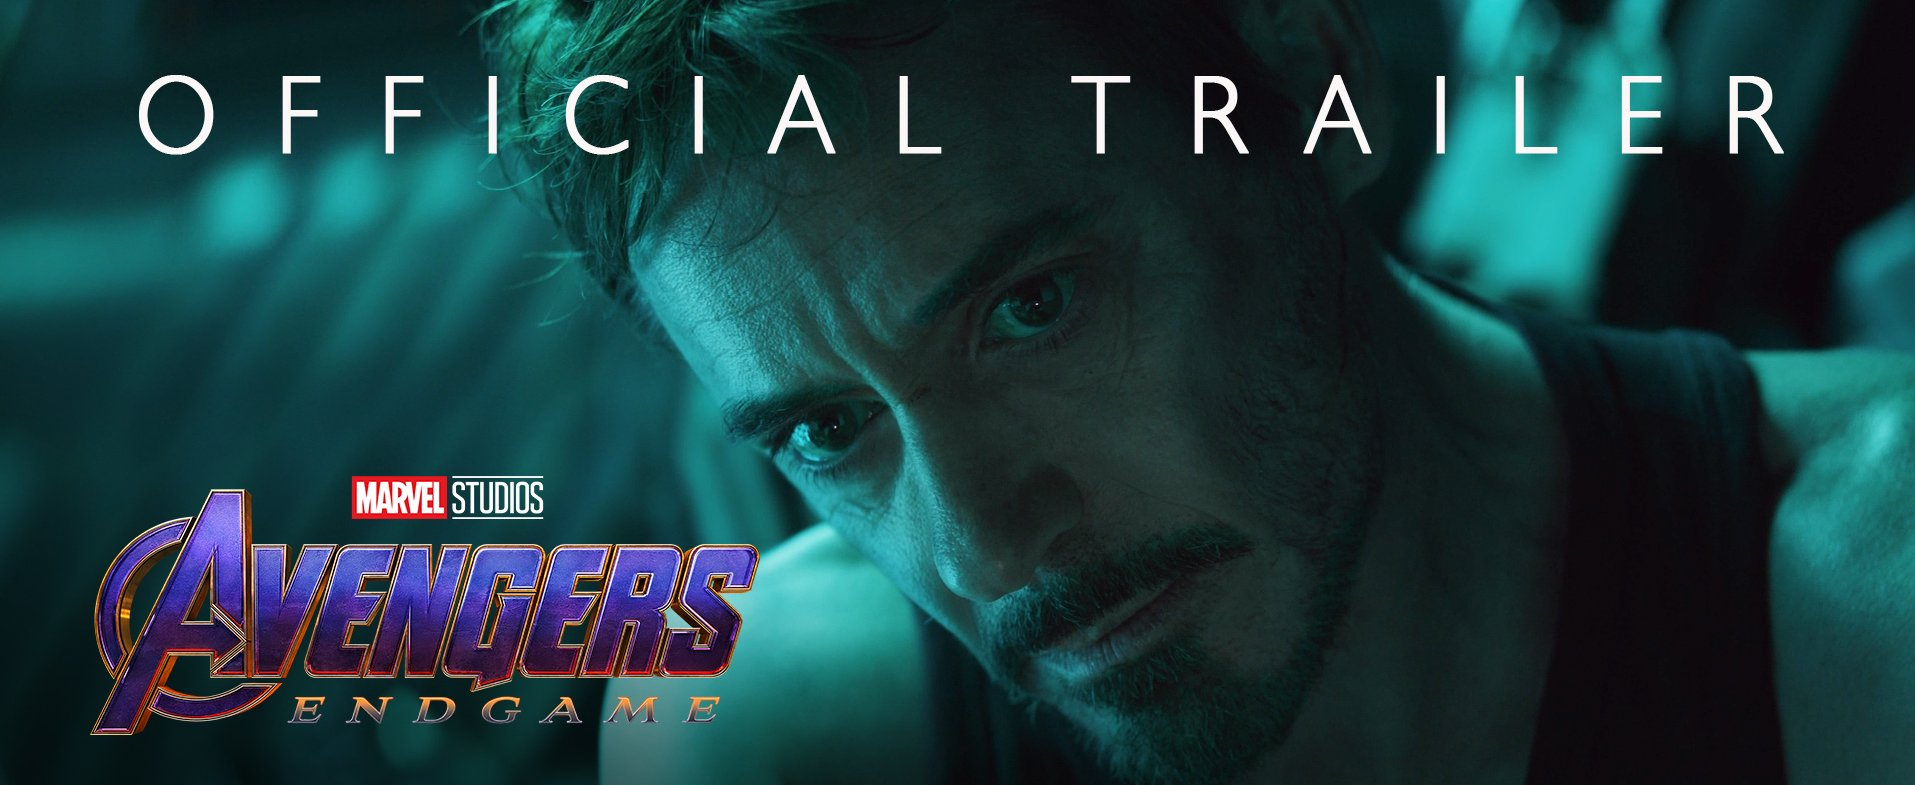 Whatever it takes. Watch the brand-new trailer for #AvengersEndgame, in theaters April 26. https://t.co/hX1PCElXhR